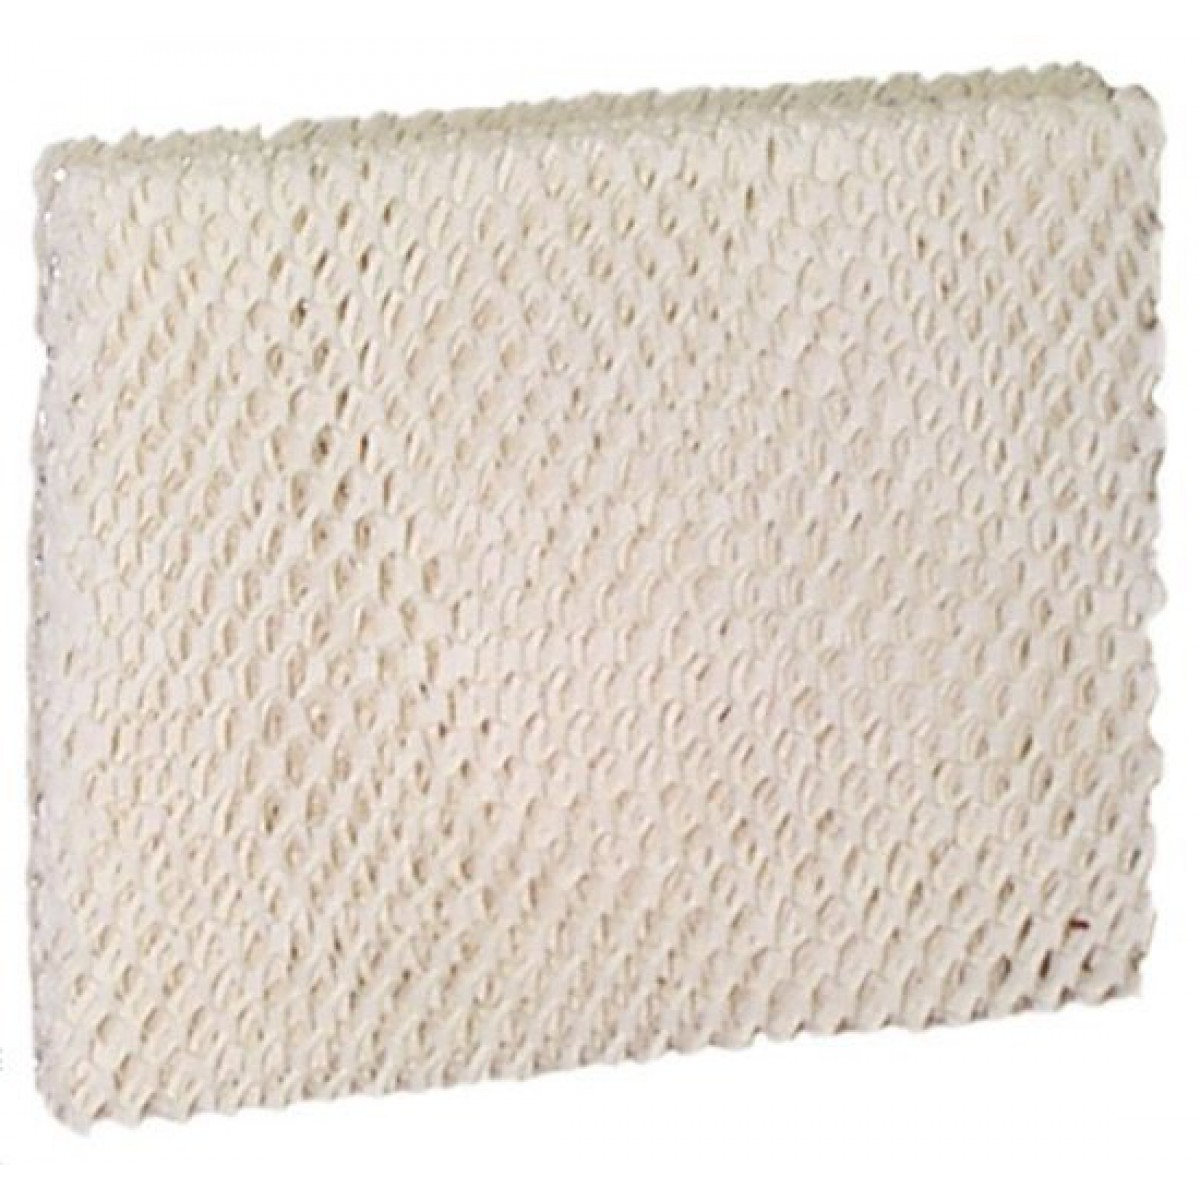 Home > Kenmore 14113 Humidifier Filter Replacement by Tier1 #503728